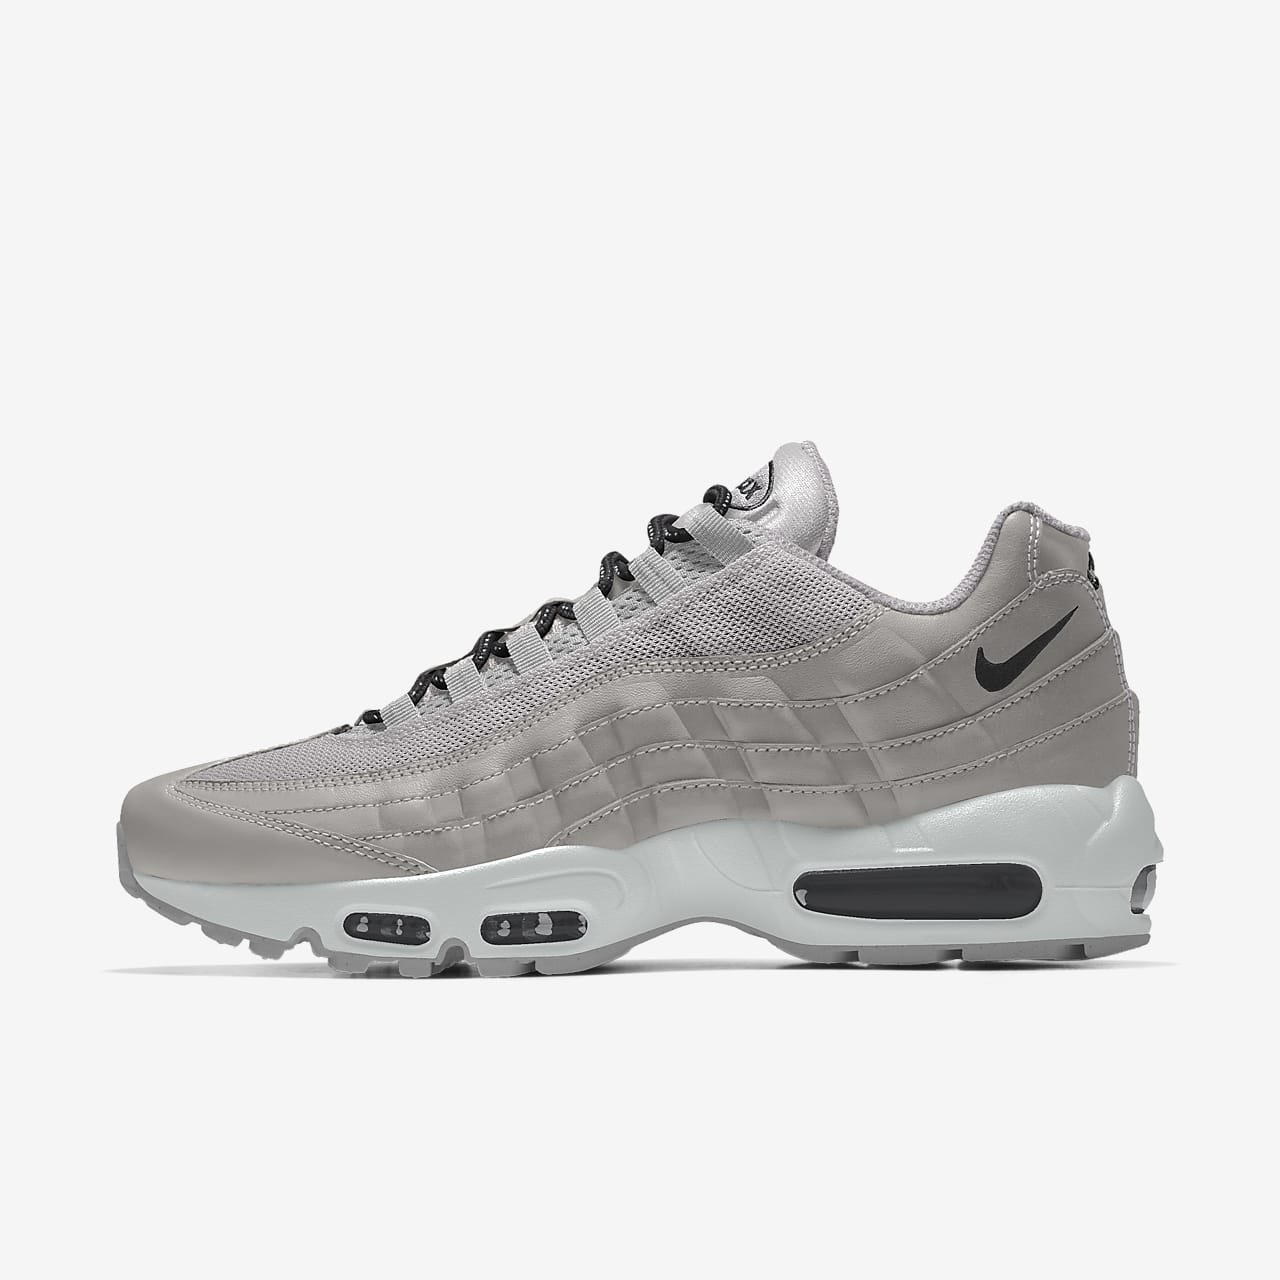 Nike Air Max 95 Unlocked By You Custom Women's Lifestyle Shoe